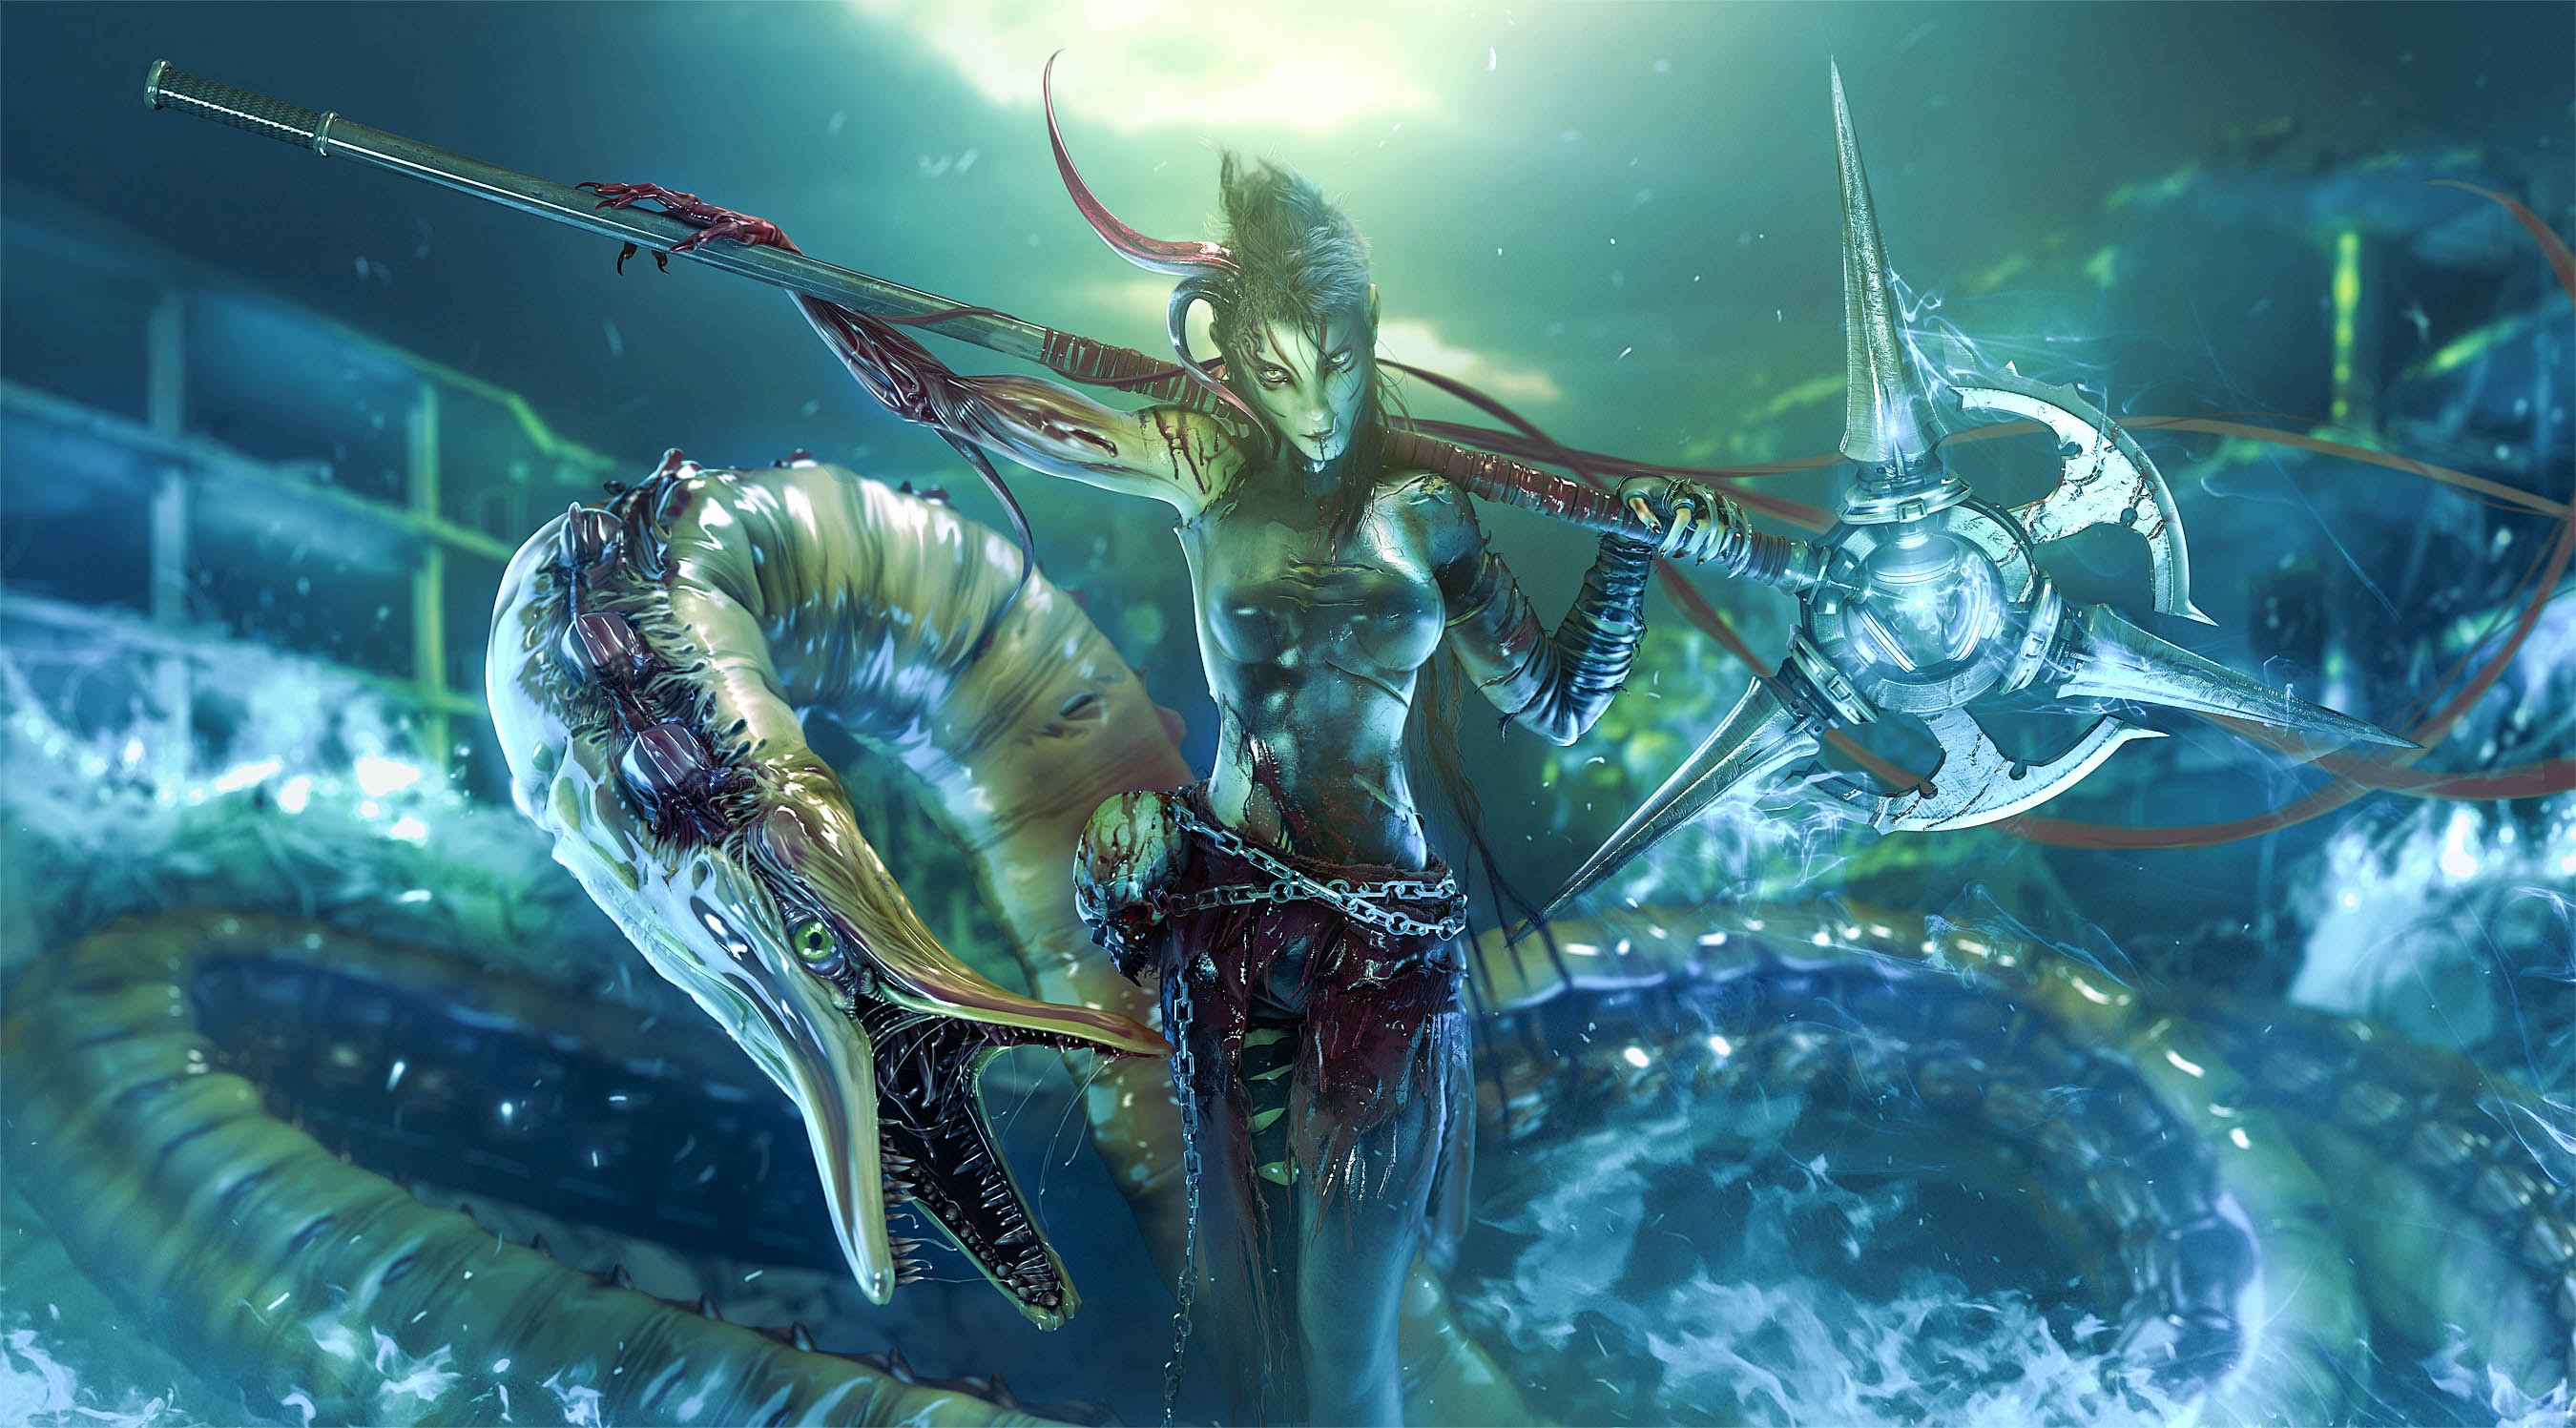 Sea Monster Fabulous New Hd Wallpapers Amp Desktop